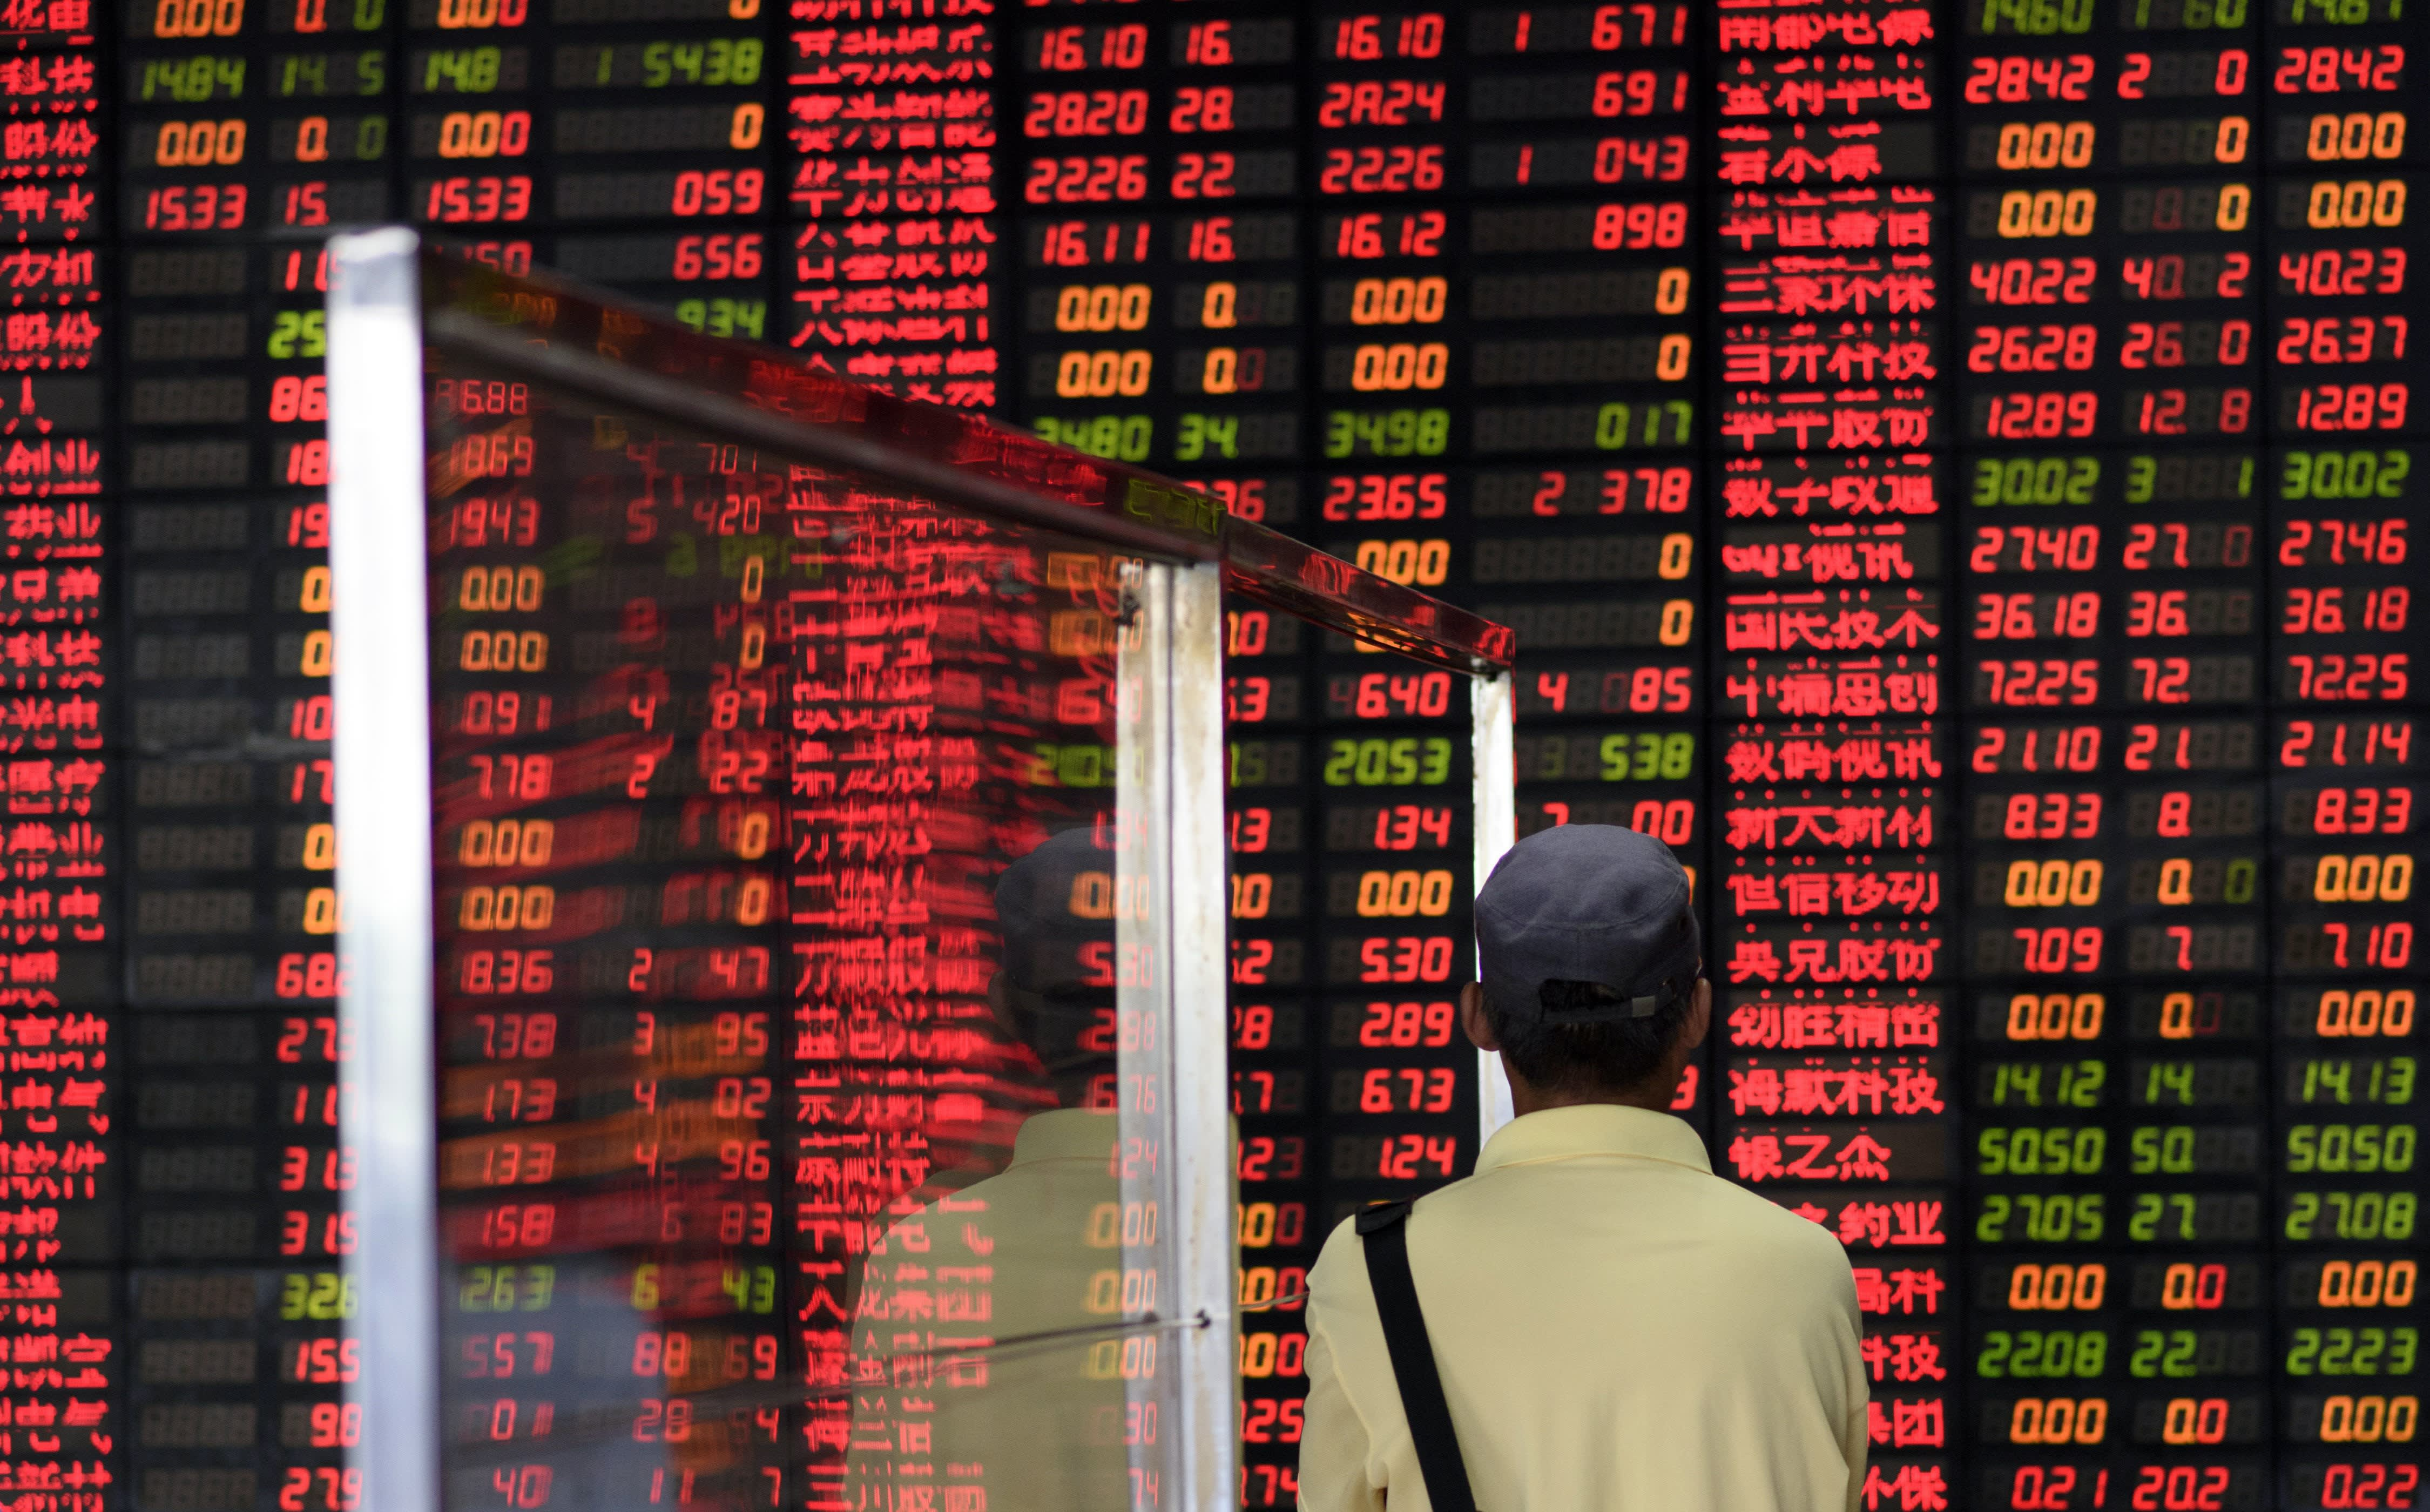 Goldman: Government-directed traders bought up billions in Chinese stocks last quarter